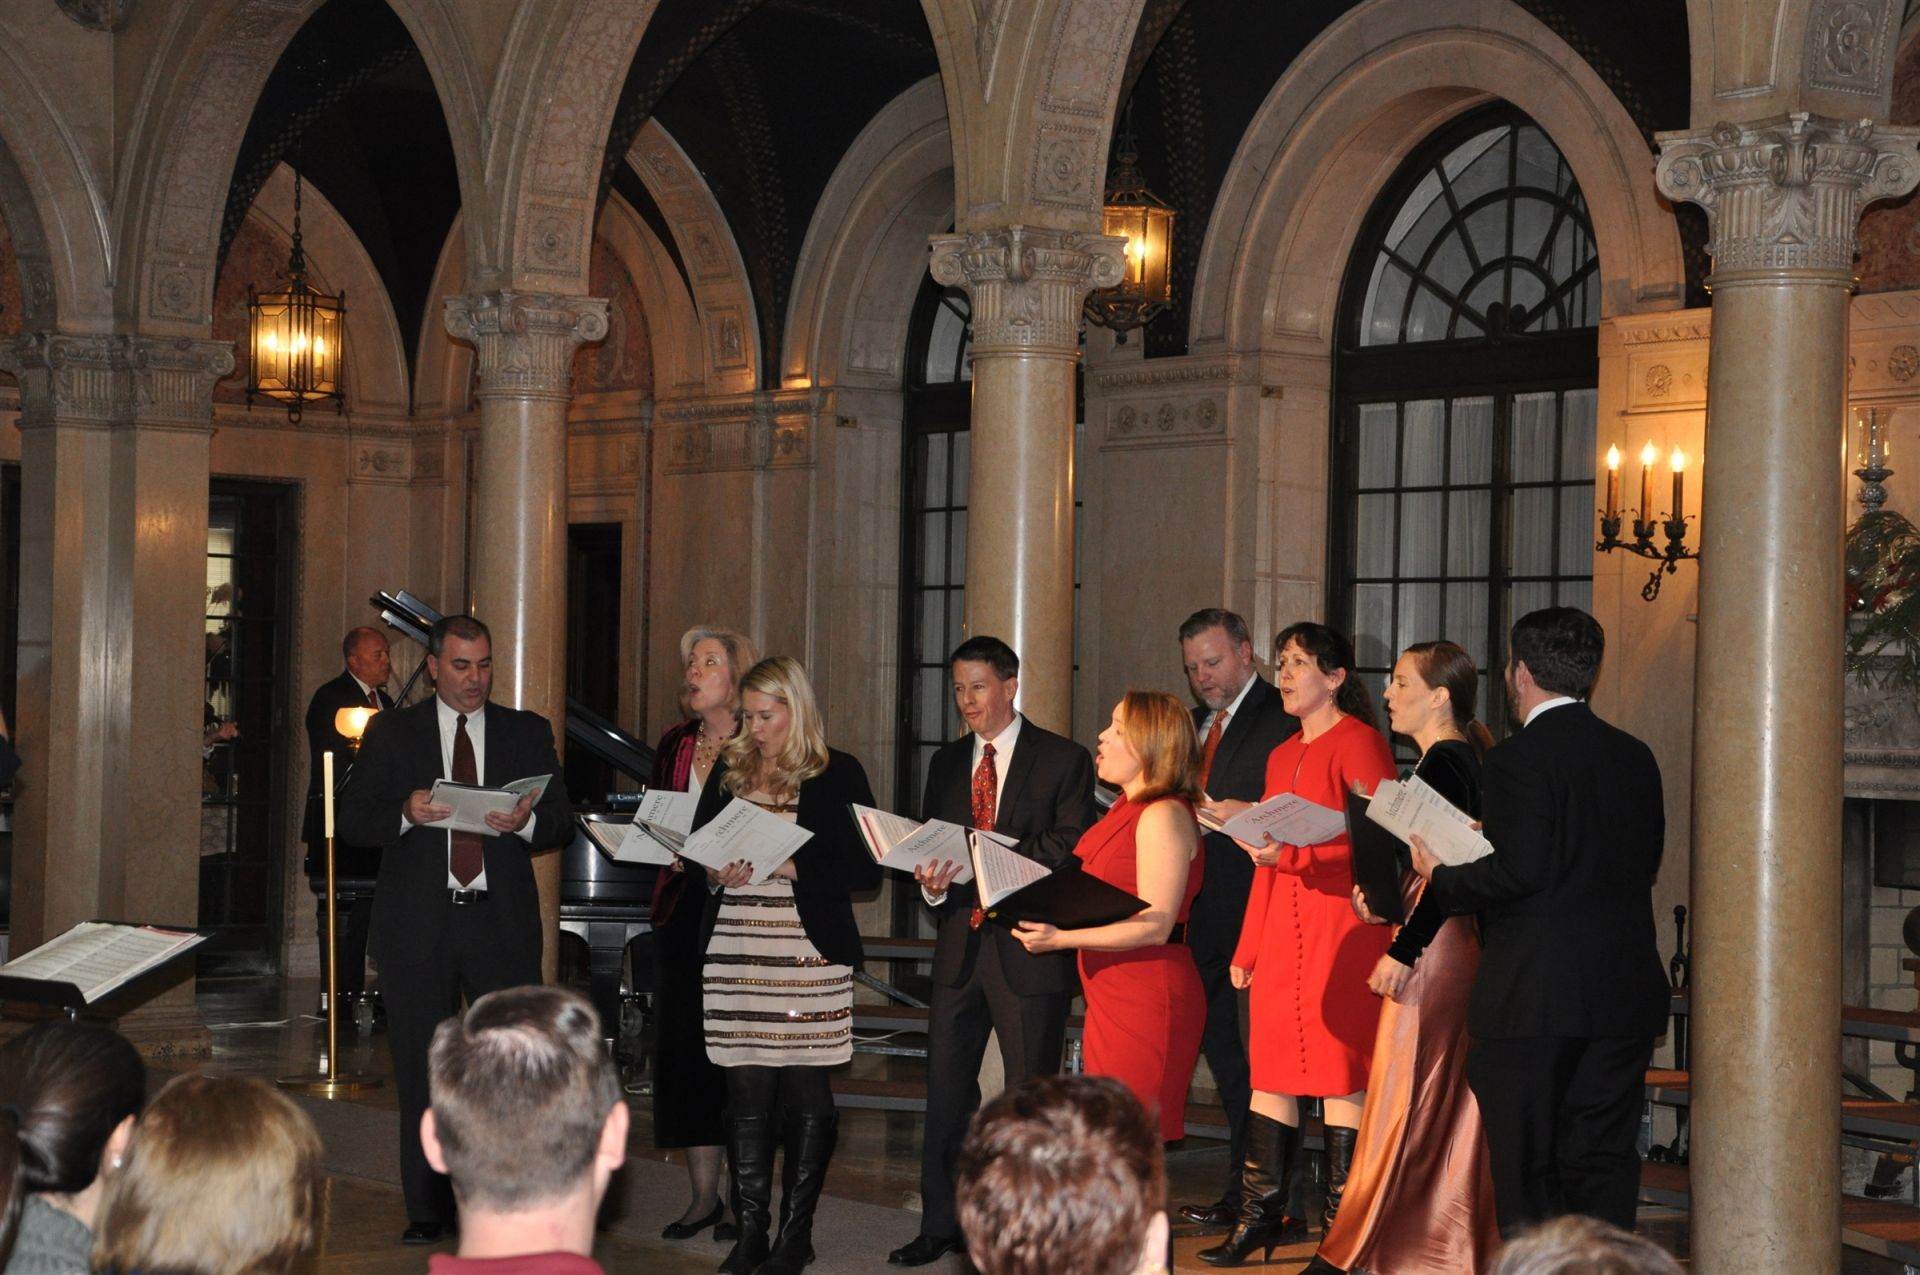 Alumni Mastersingers Reunited in The Patio for a Christmas Concert on December 15th